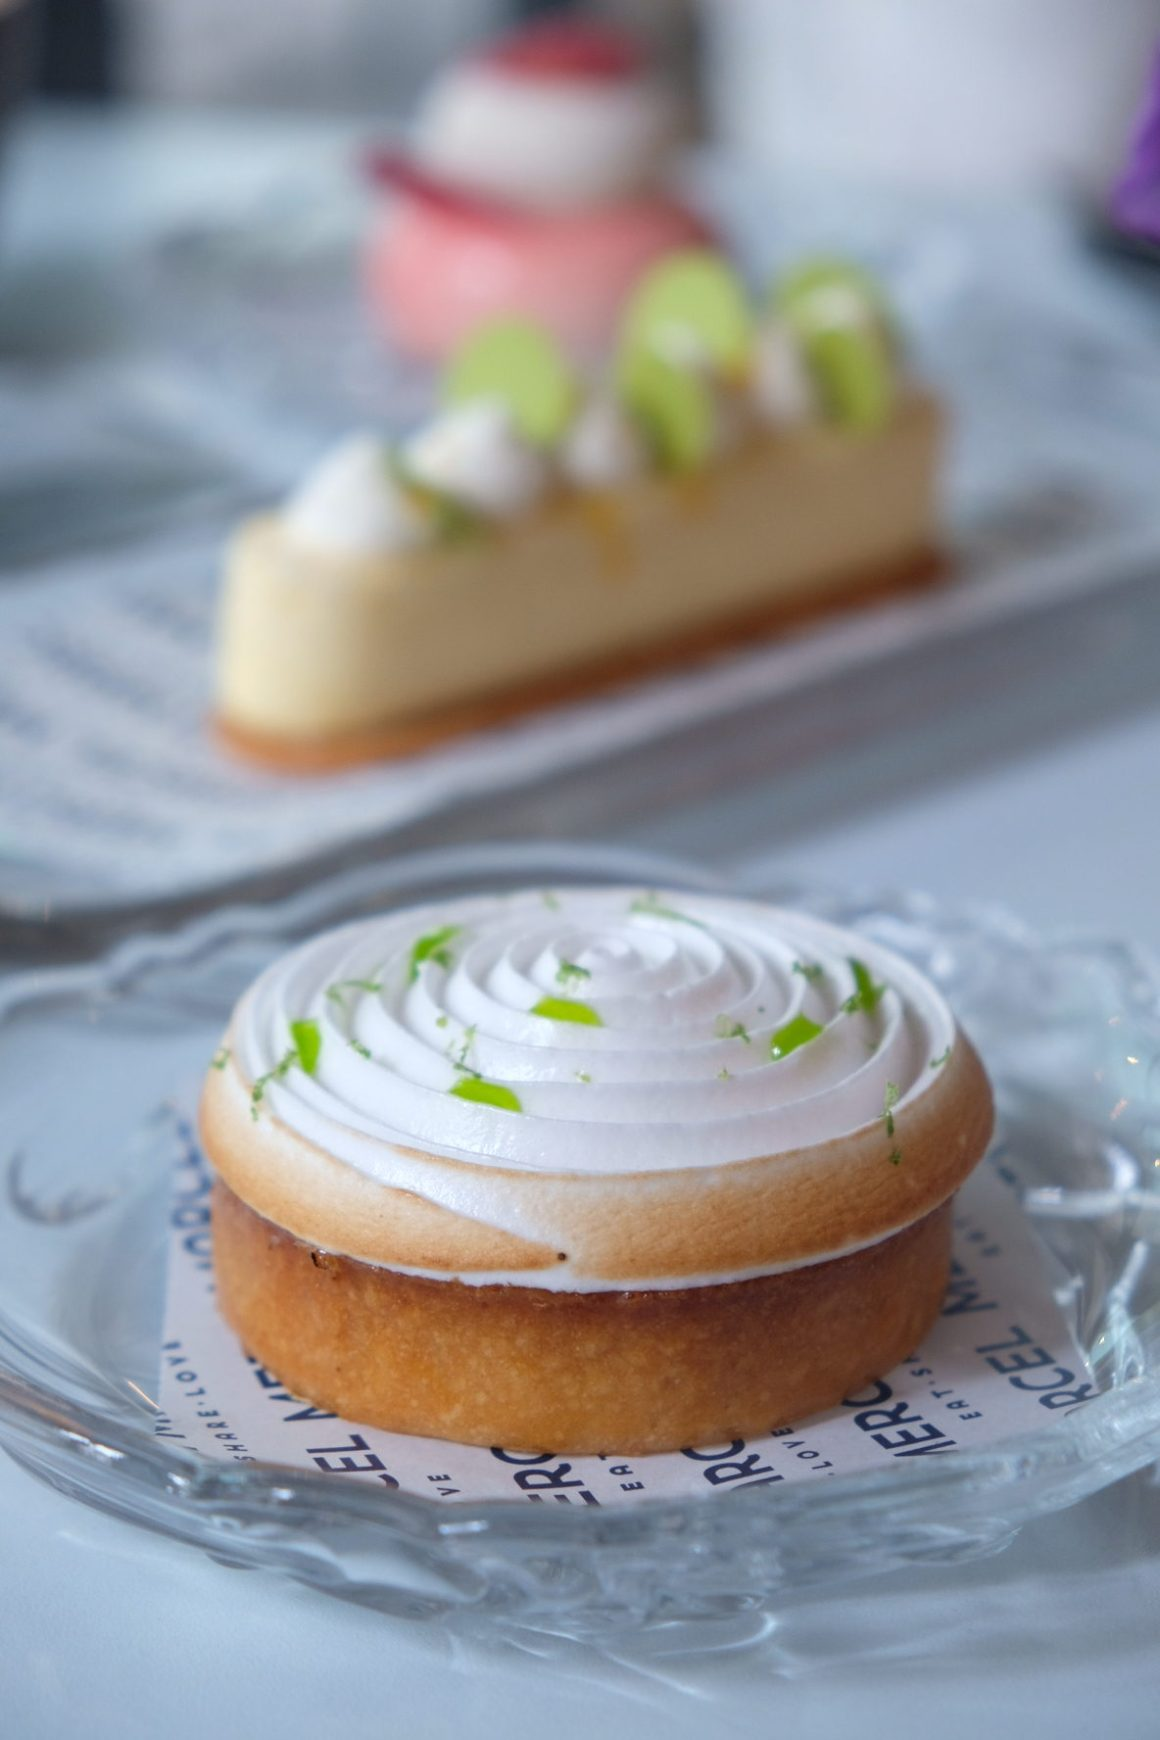 Merci Marcel x A Summer In Paris Offers 4 French Patisserie - Tourbillon ($12)